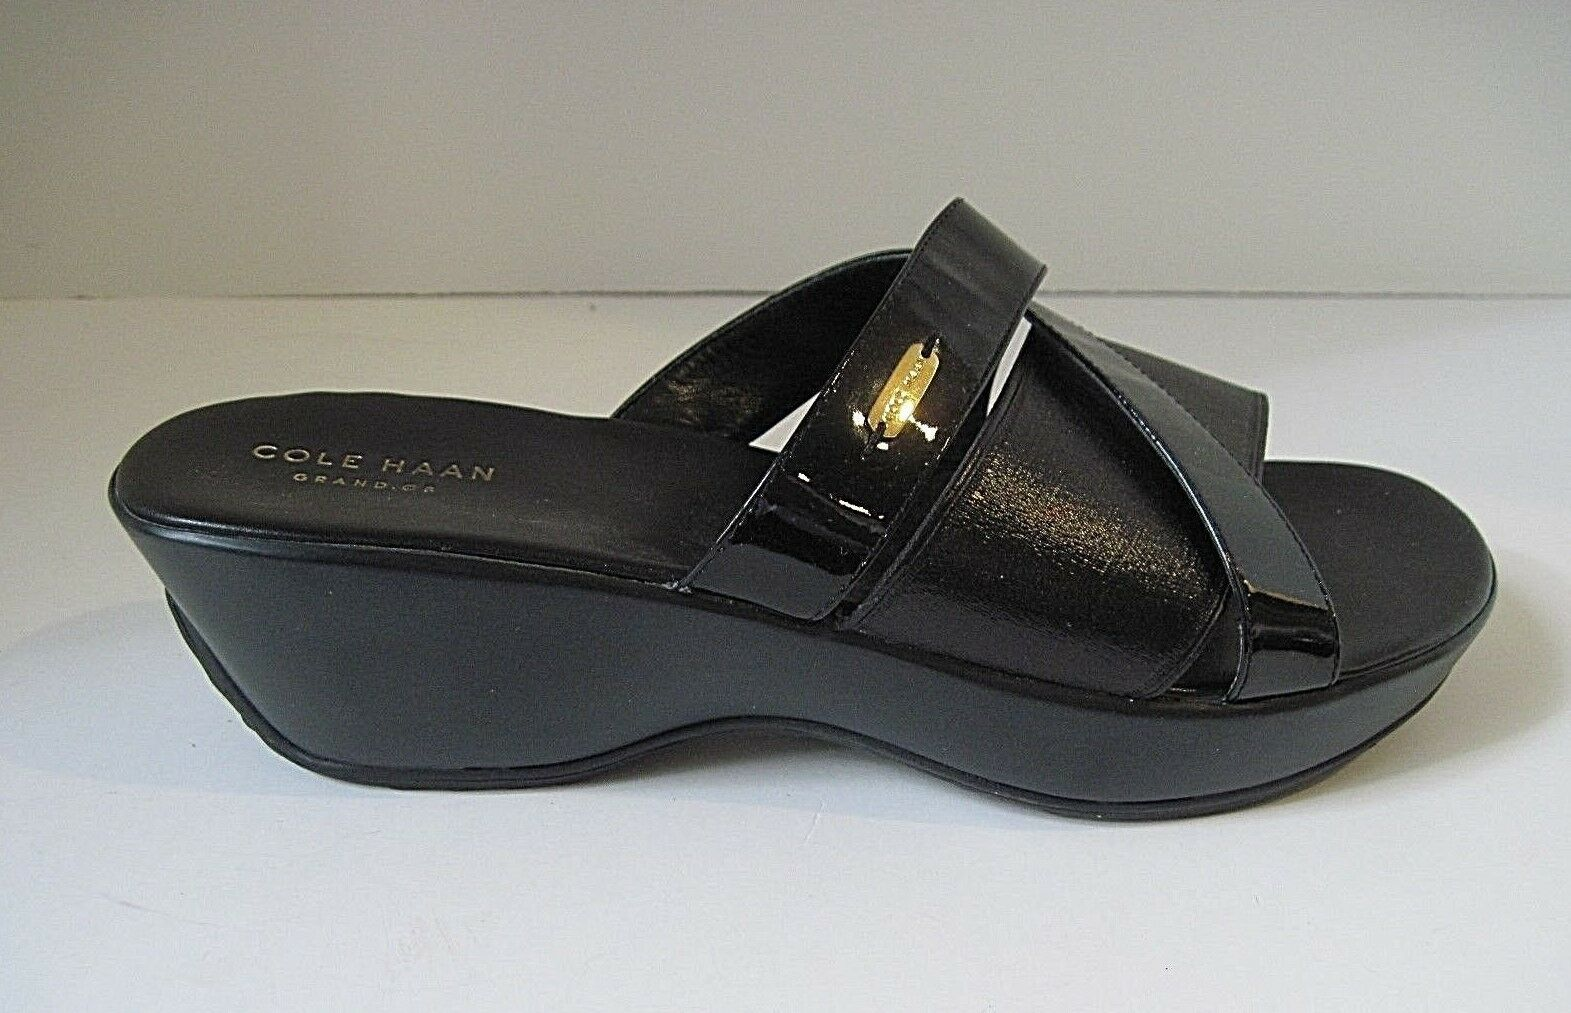 COLE HAAN HAAN HAAN Grand OS donna Wedge Comfort Slides nero Patent Leather Elastic 9B 86e139